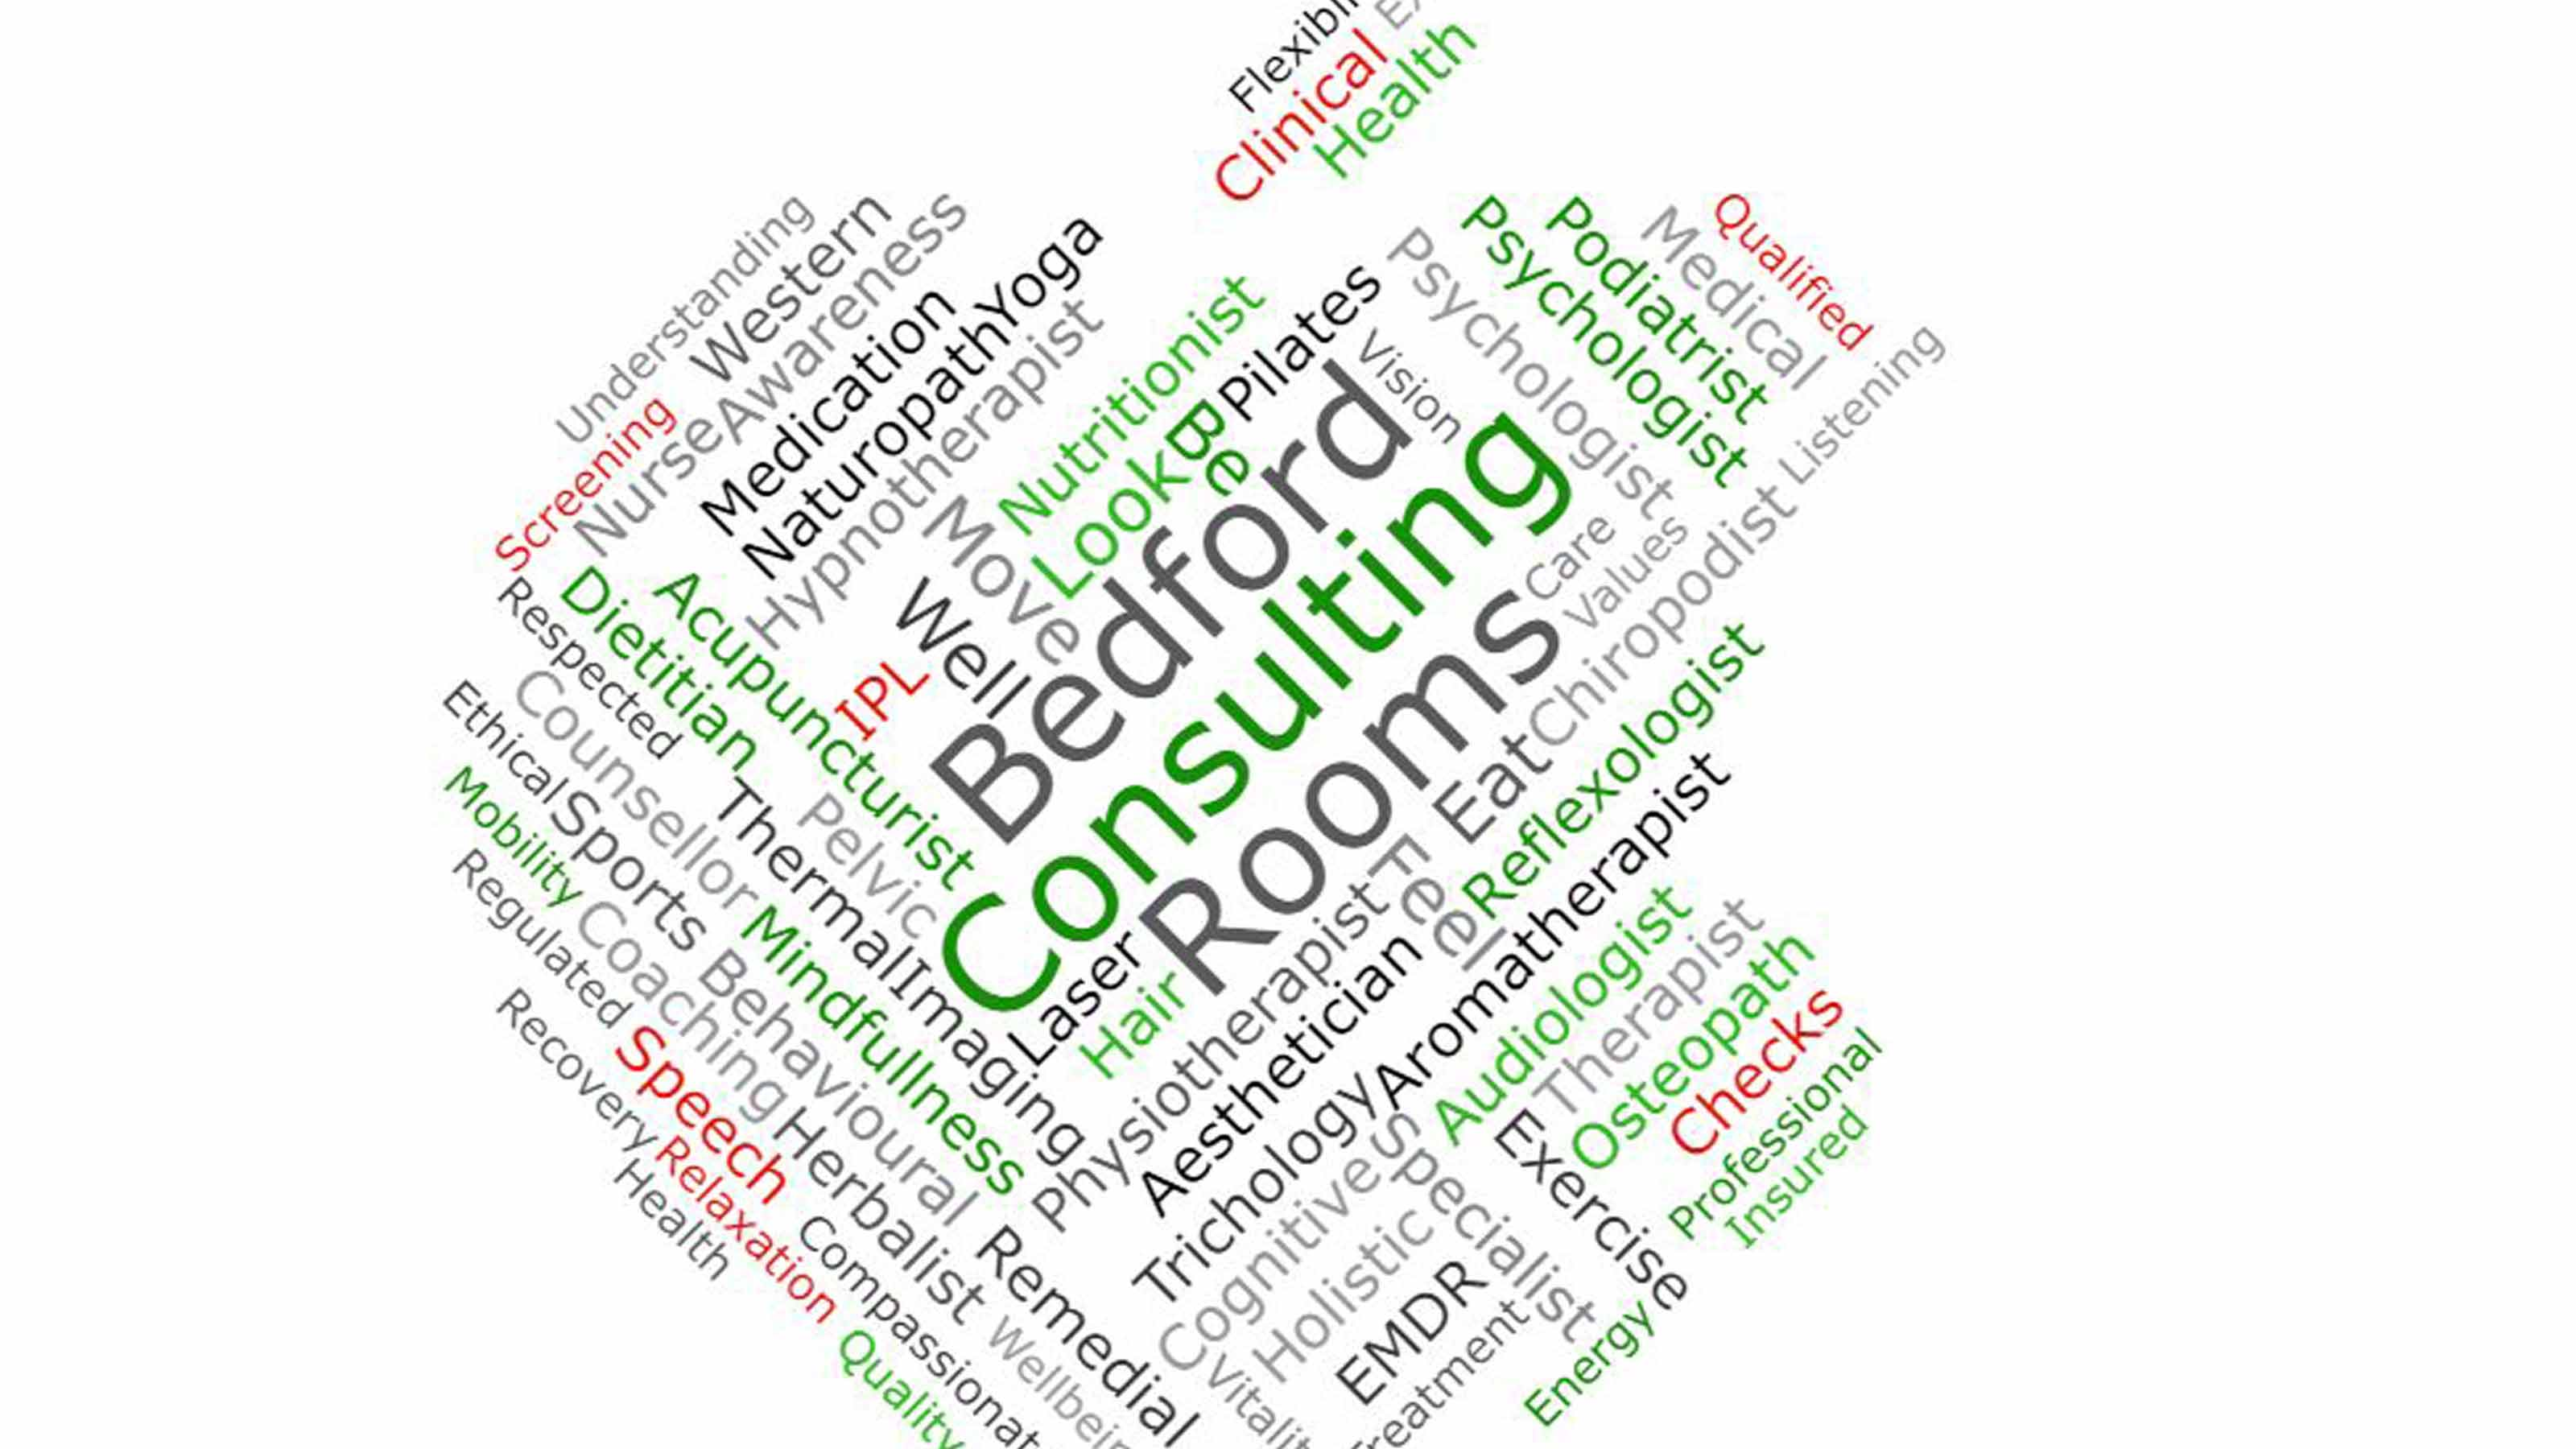 words about bedford consulting rooms